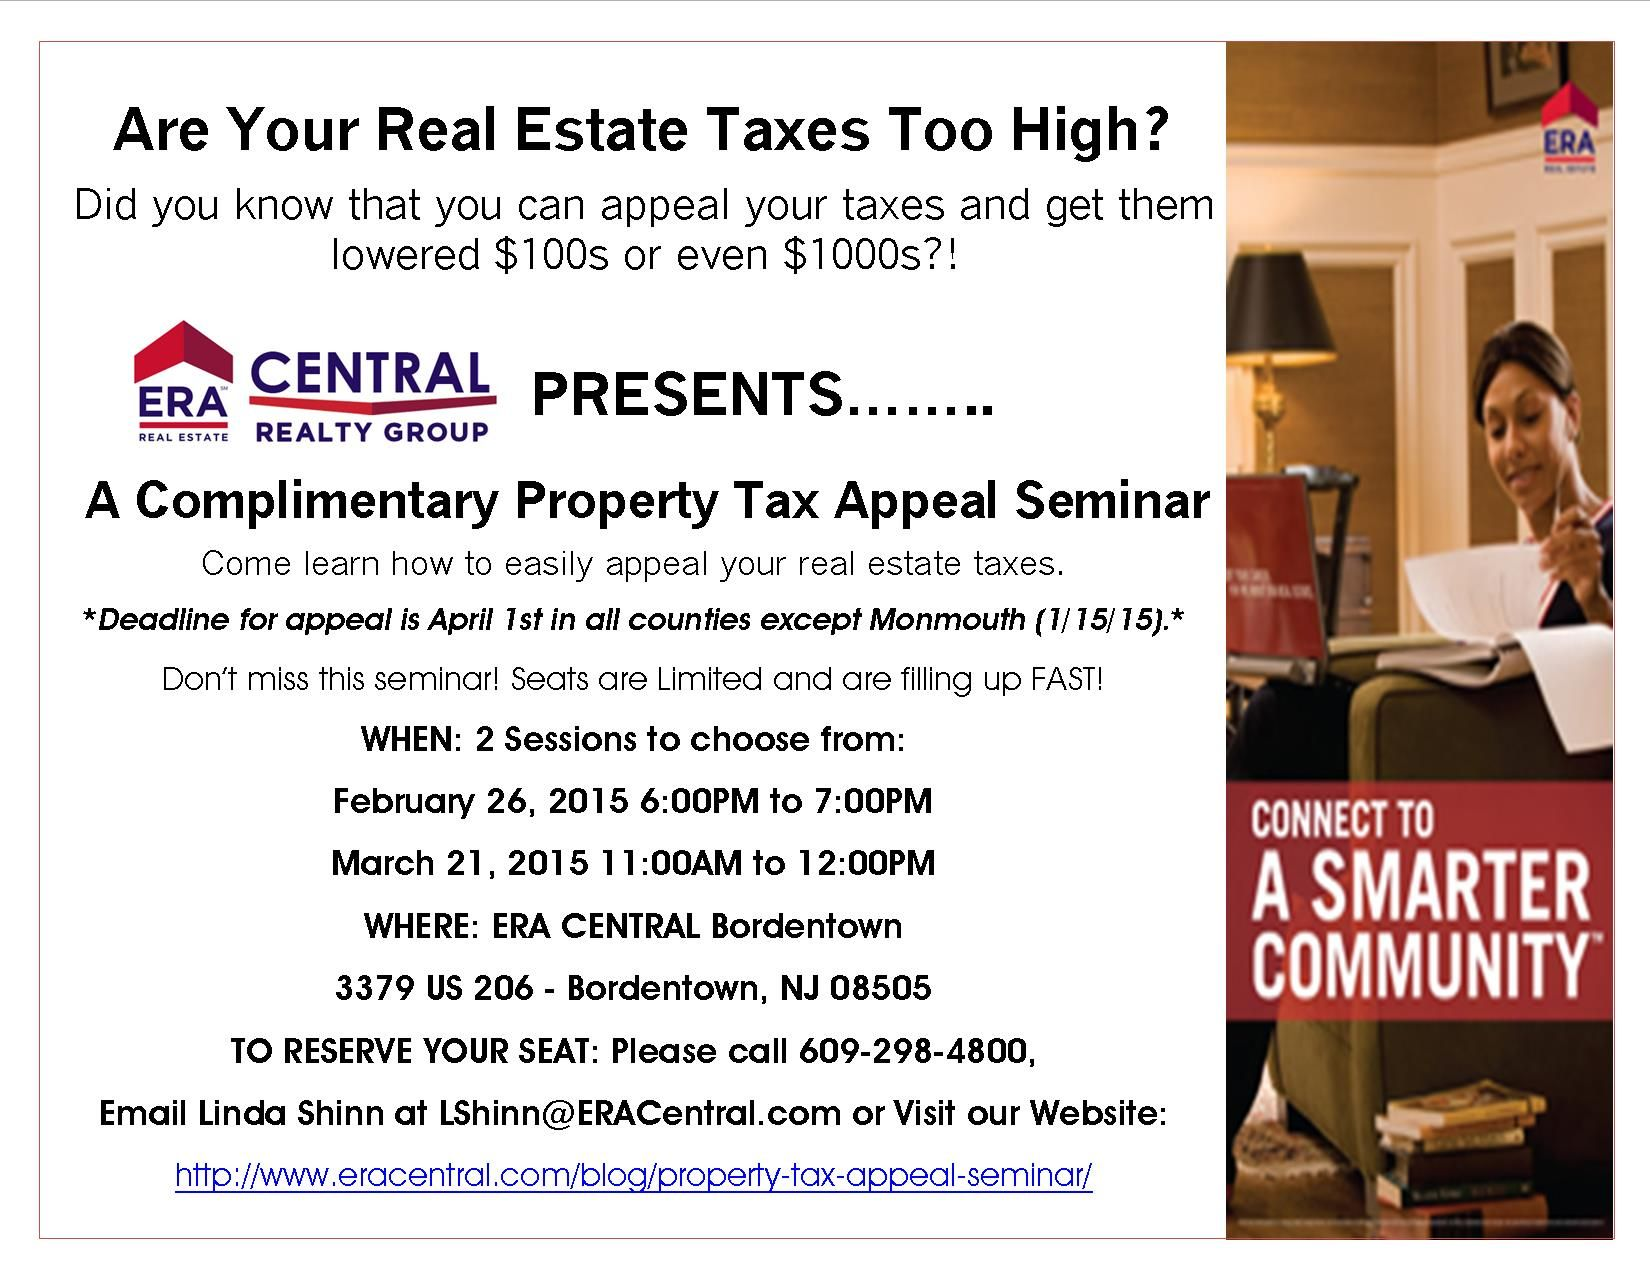 Come to our FREE SEMINAR on How to Appeal your Home Taxes! Any questions please email me vbenn@eracentral.com or call me 520-245-6224